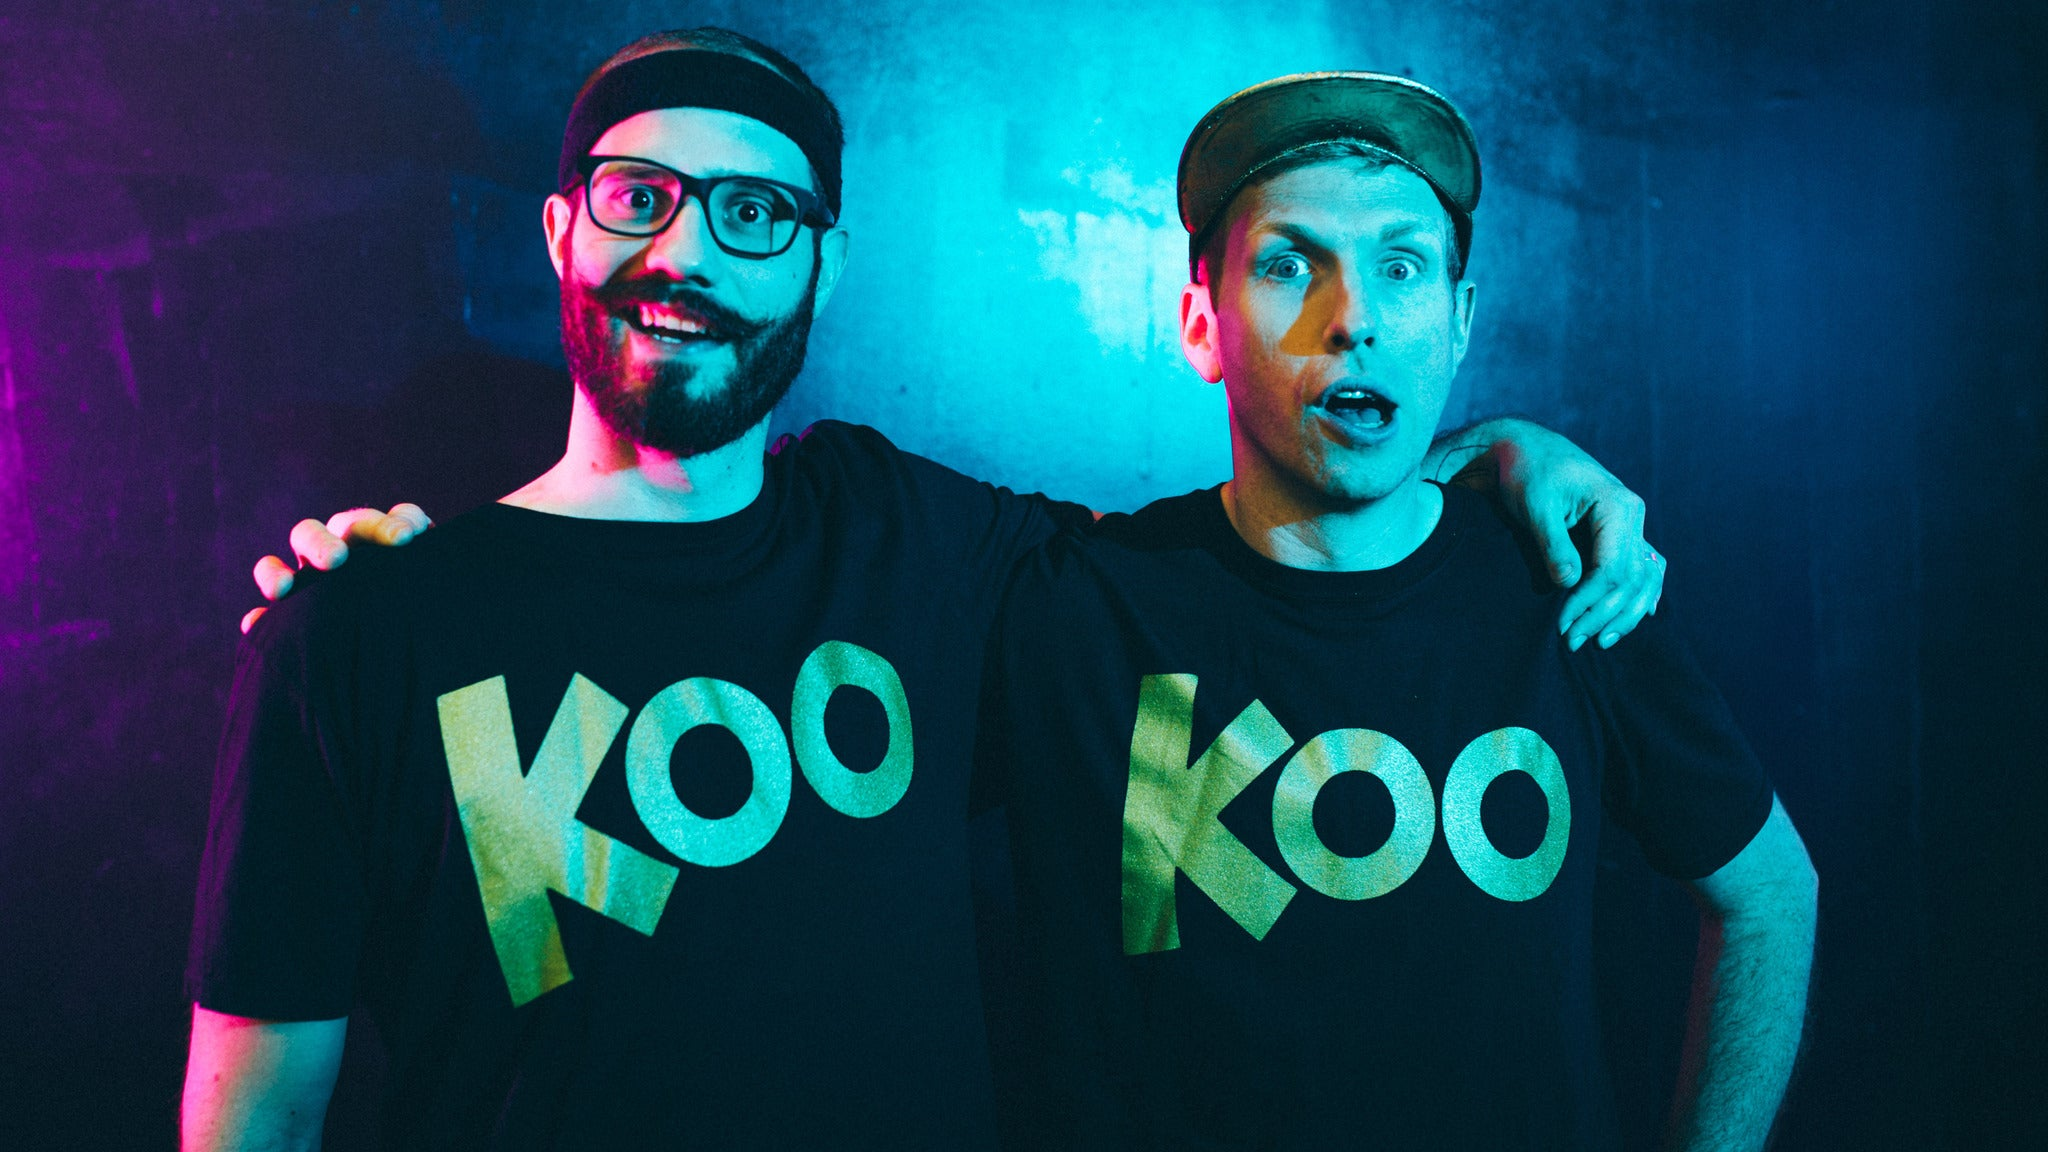 Koo Koo Kanga Roo at Icon Lounge